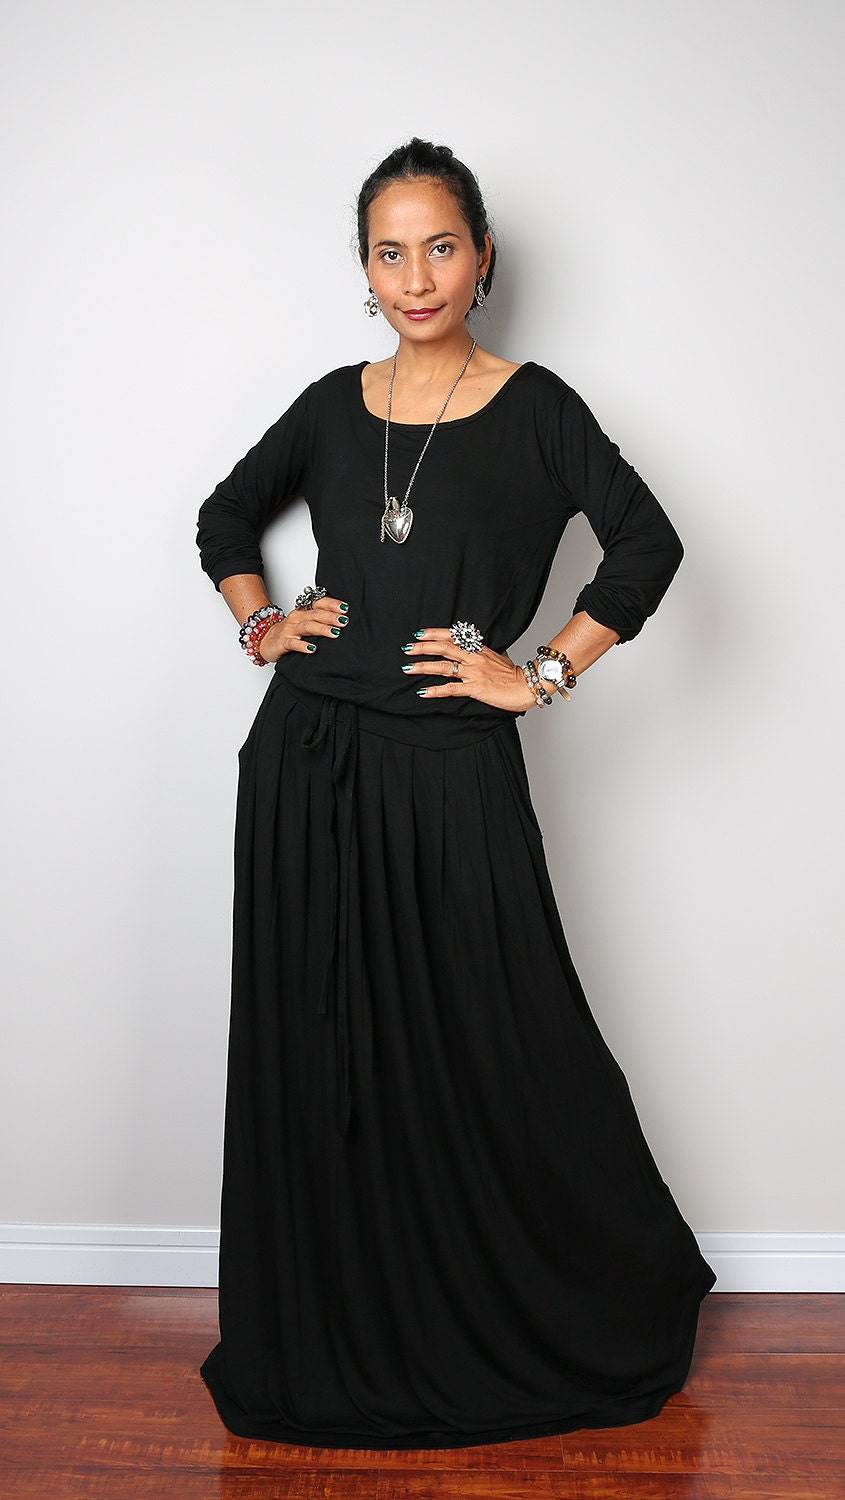 Long Sleeve Black Maxi Dress Cocktail Dresses 2016